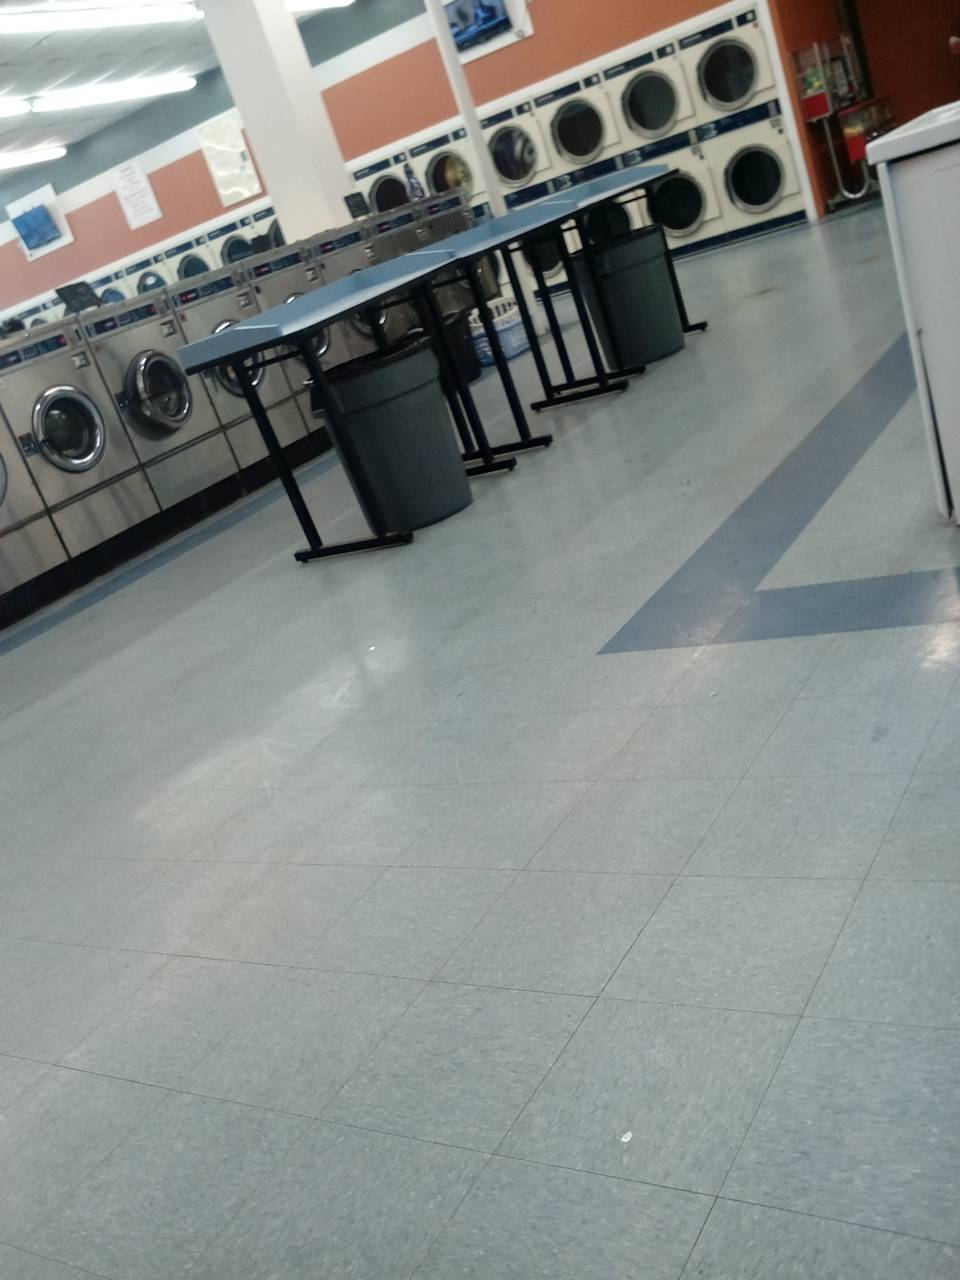 TX Laundry - laundry  | Photo 5 of 6 | Address: 2714 W Seminary Dr, Fort Worth, TX 76133, USA | Phone: (817) 920-7889